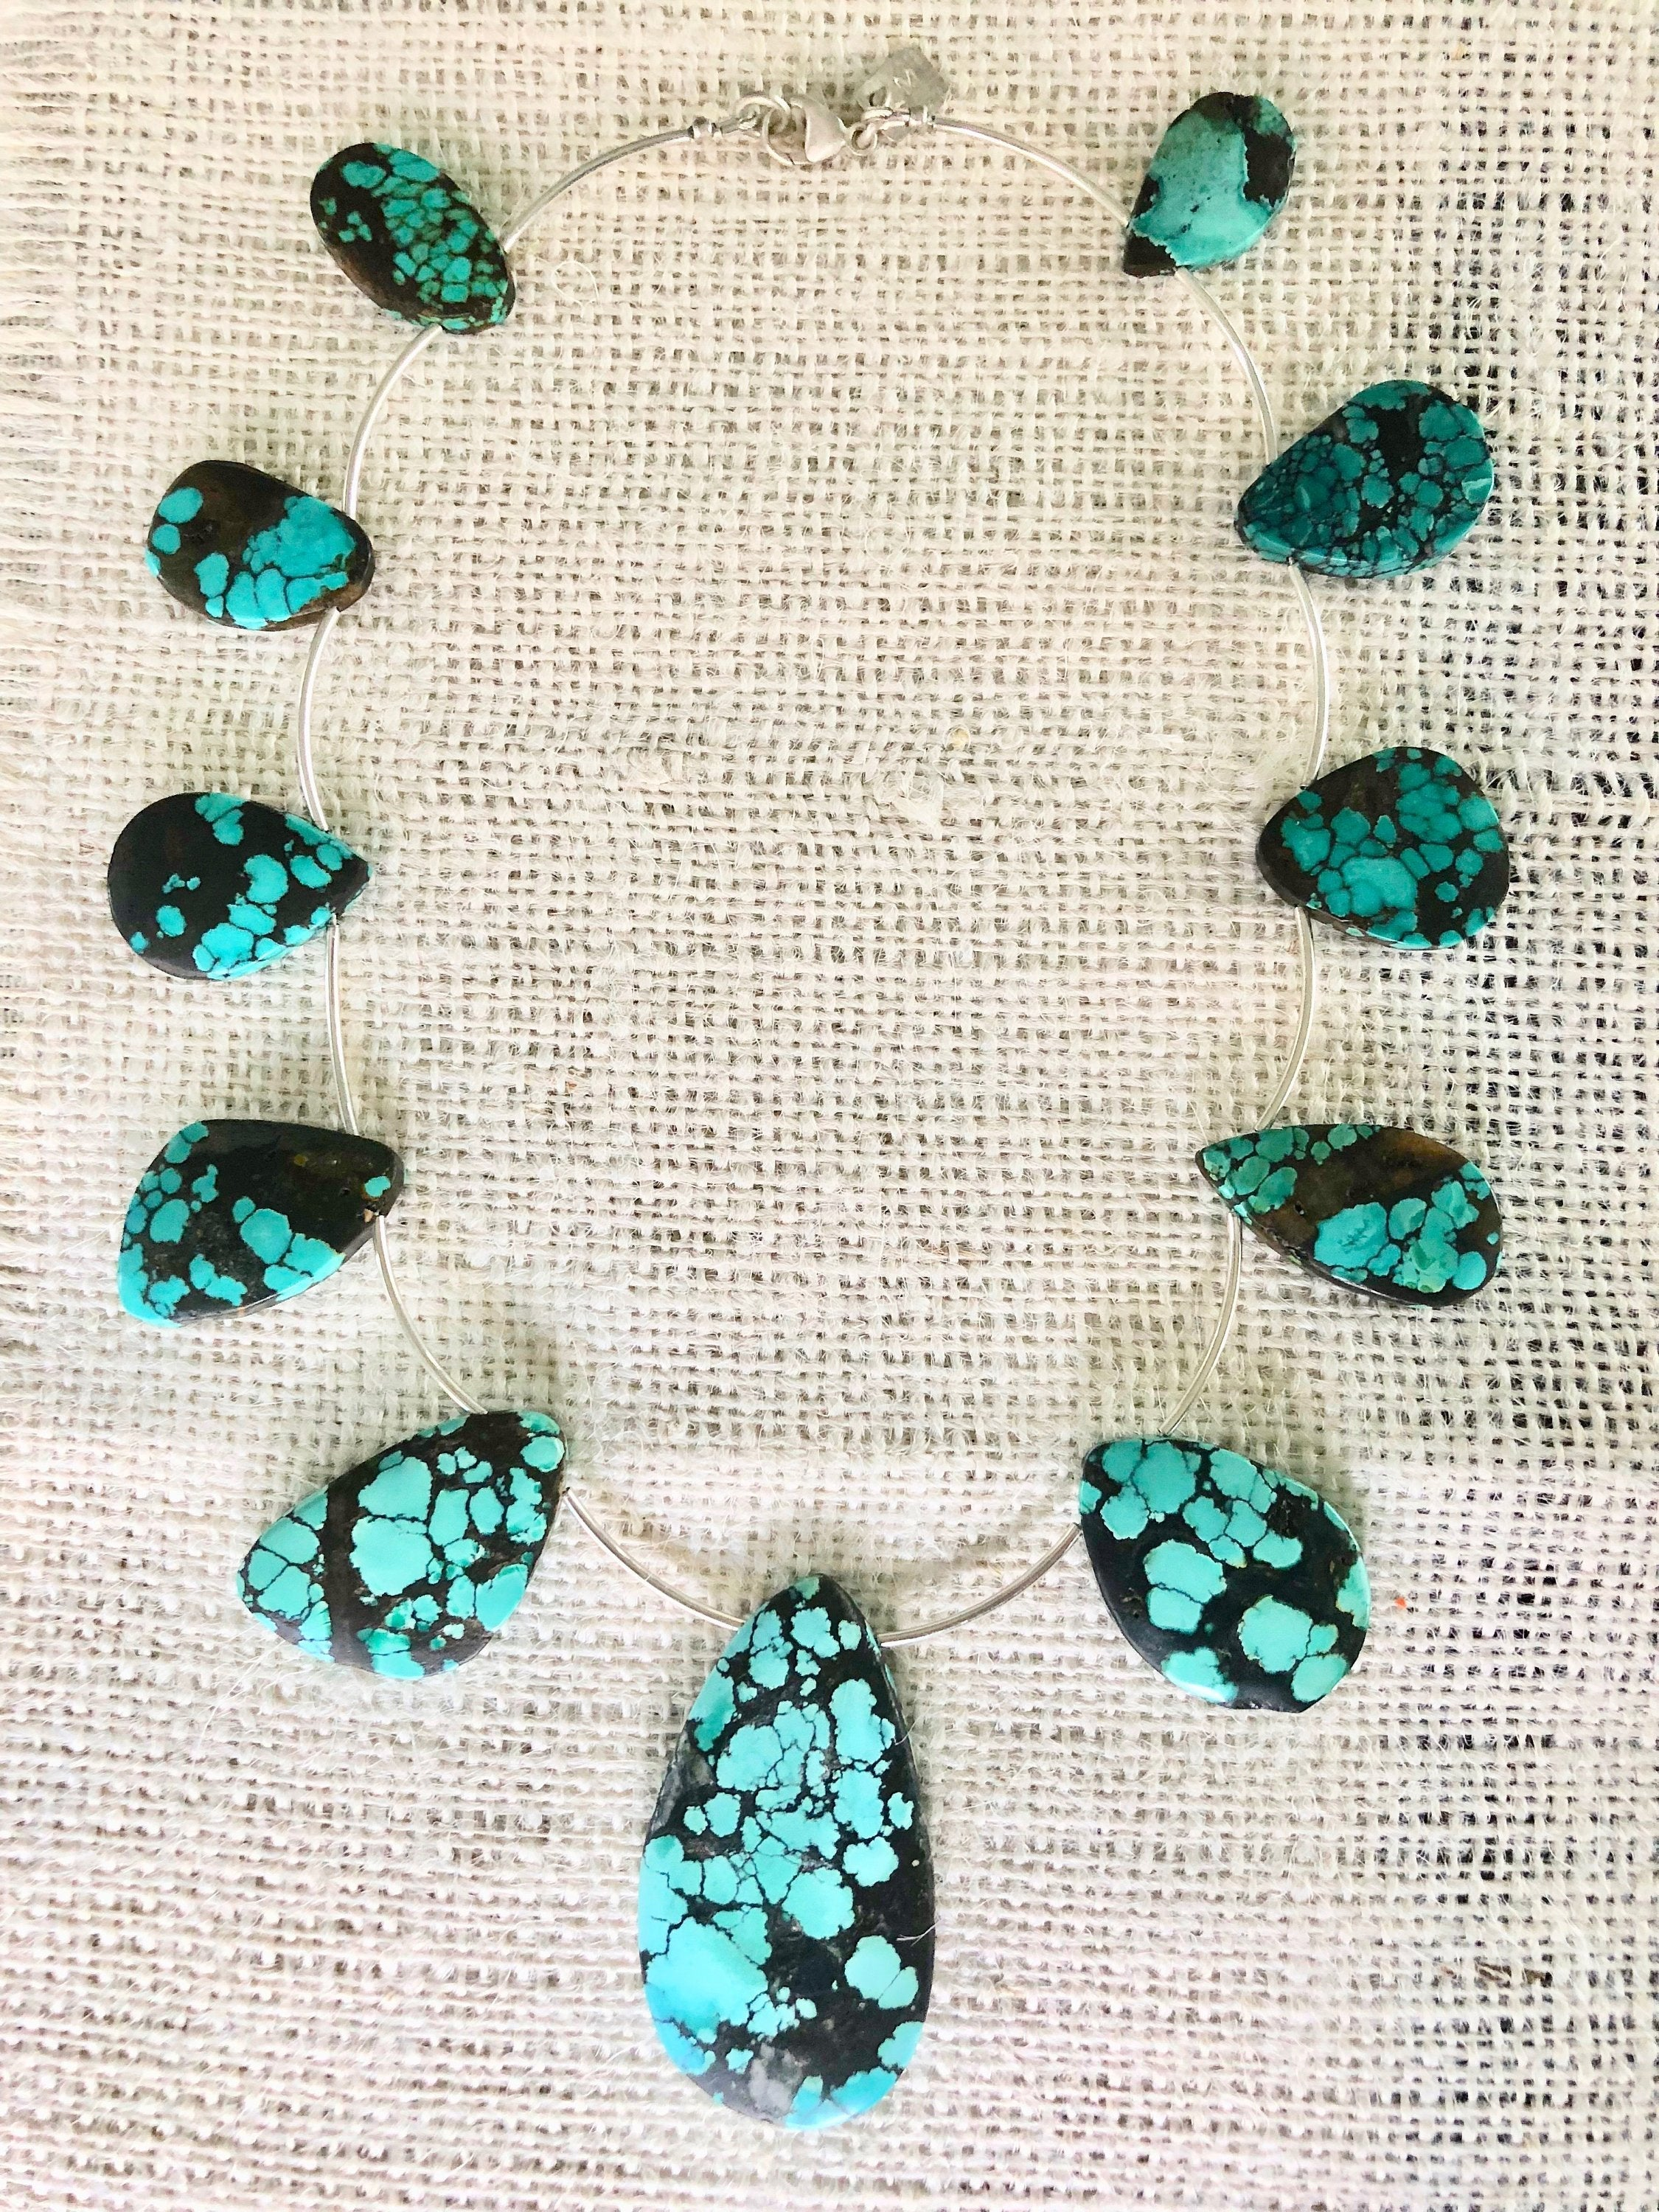 Stunning Turquoise Necklace, Chunky Turquoise Necklace, Chunky Turquoise Jewelry, Unique Turquoise Necklace